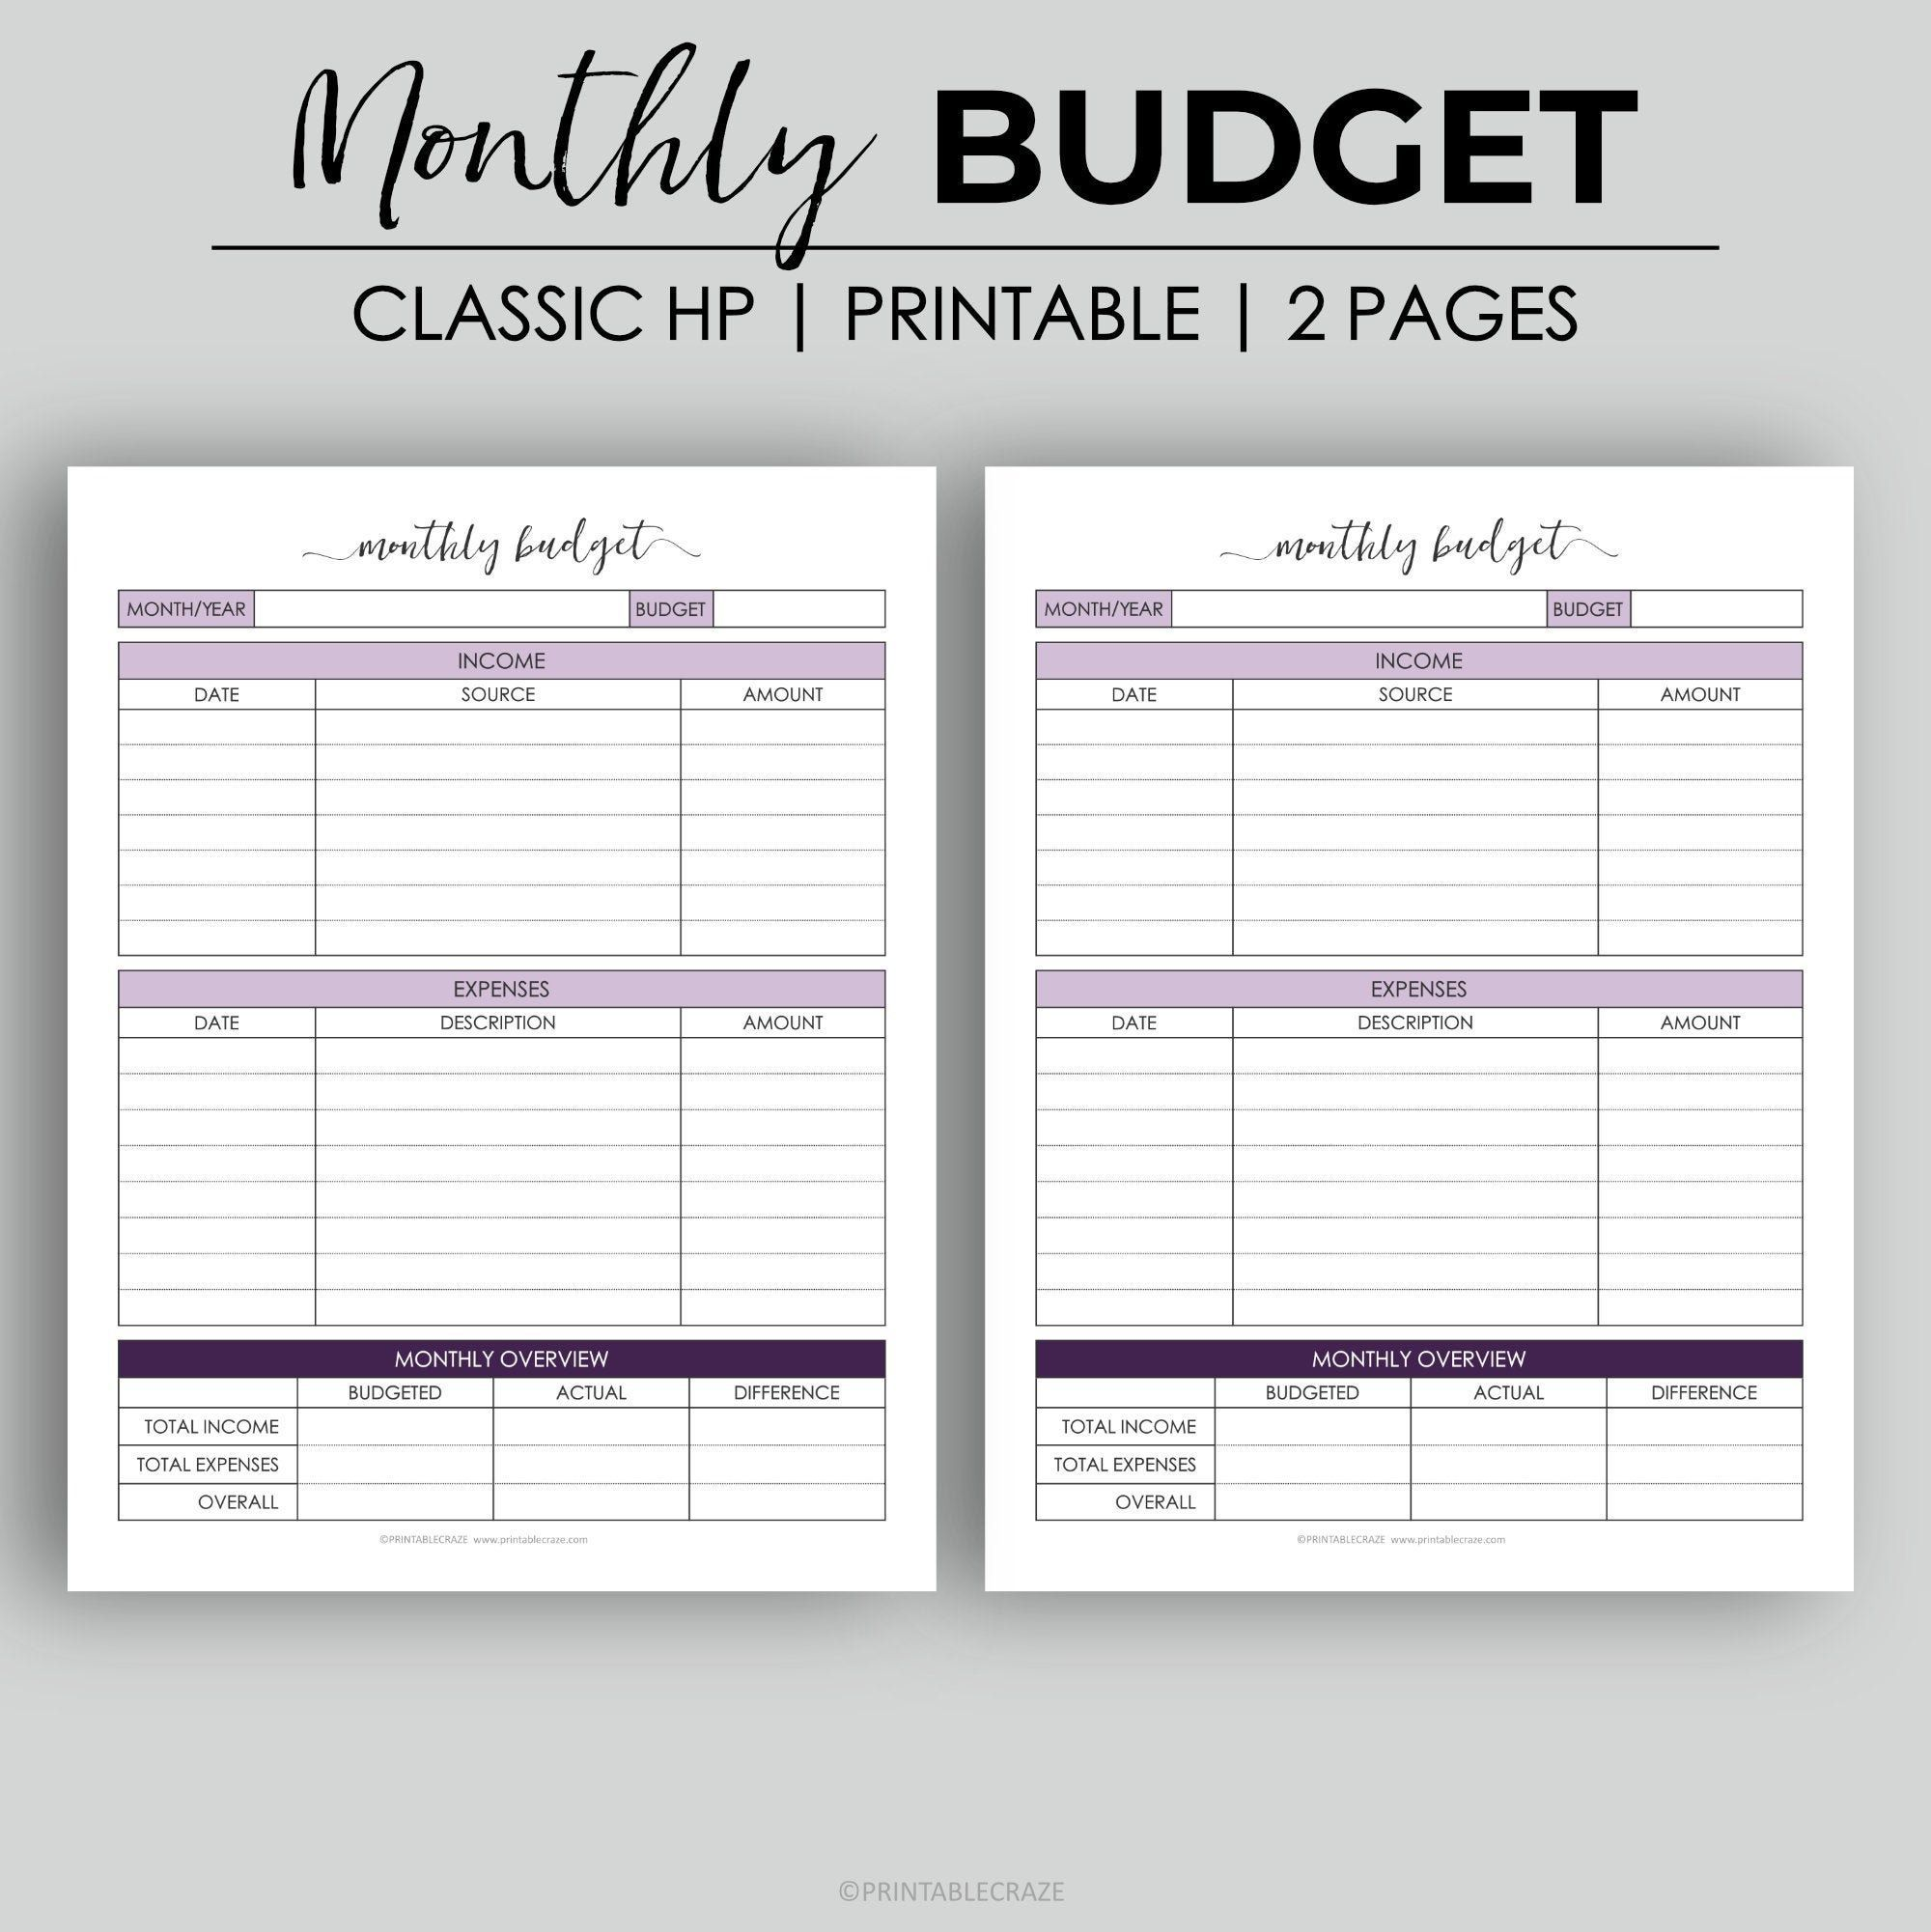 Budget Planner Discover Classic Hp Monthly Budget Expense Tracker Income Tracker Etsy Budget Planner Printable Free Budget Printables Budget Planner Template